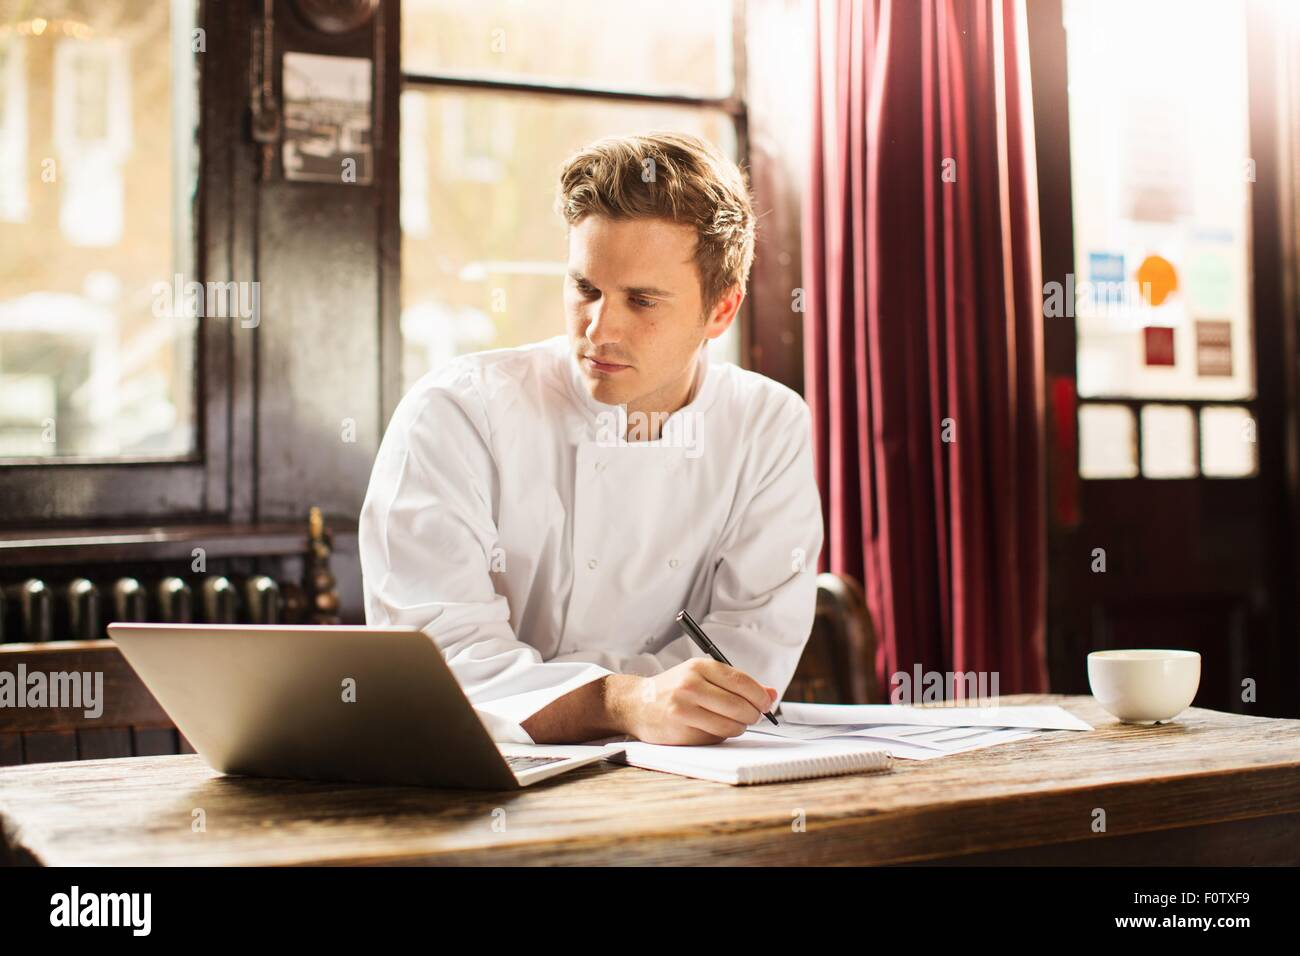 Young man wearing chef uniform using laptop - Stock Image